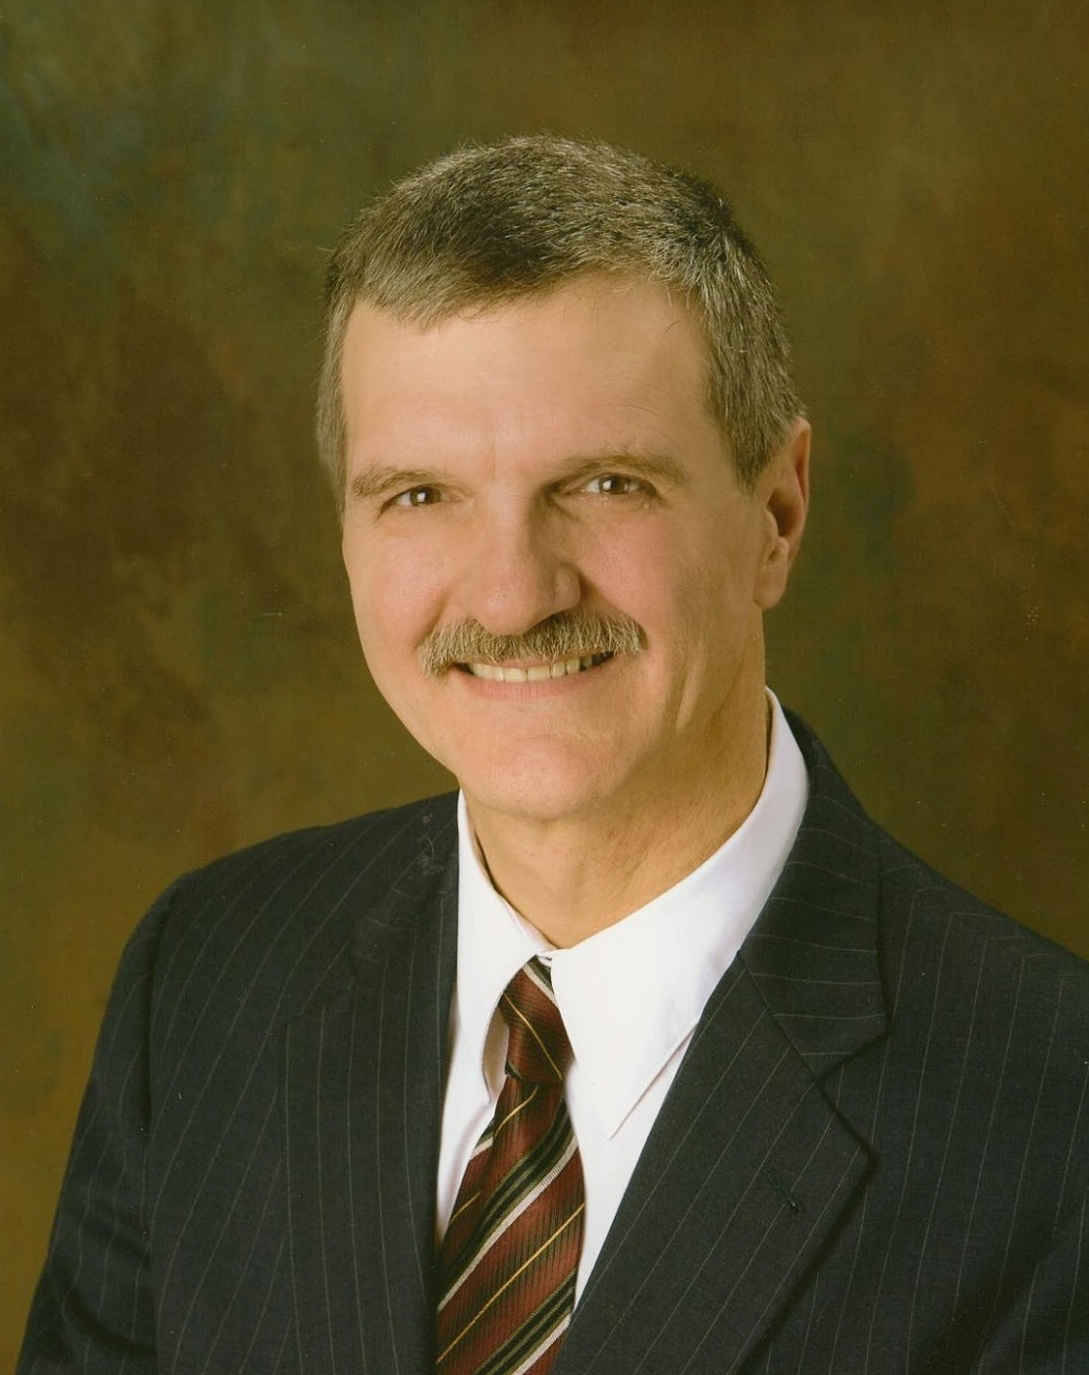 Commissioner Clare Duda has served in his position for 25 years.